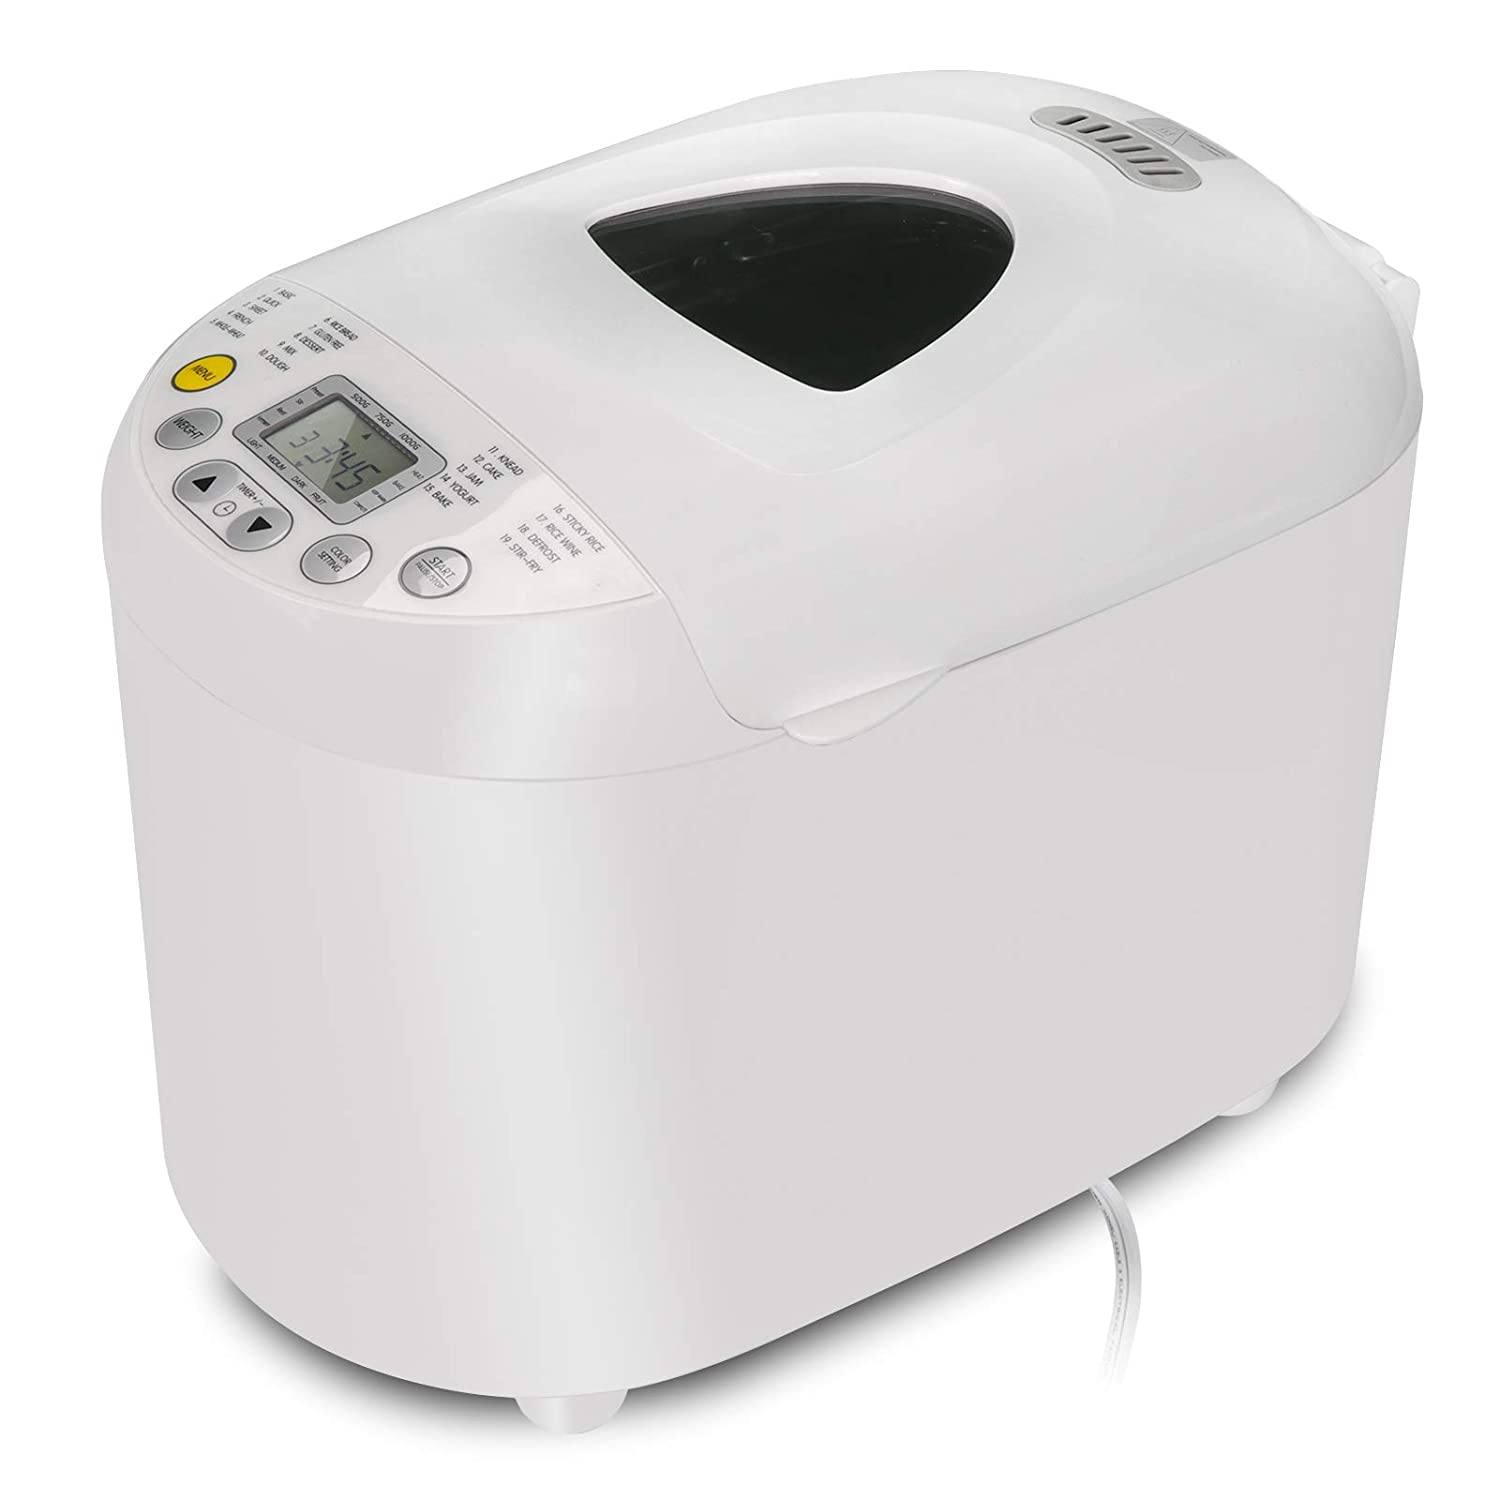 SUPER DEAL Automatic Bread Maker Stainless Steel 19 Programs, 3 Loaf Sizes, 3 Crust Colors, 15 Hours Delay Timer, 1 Hour Keep Warm, Whole Wheat Breadmaker, 550W